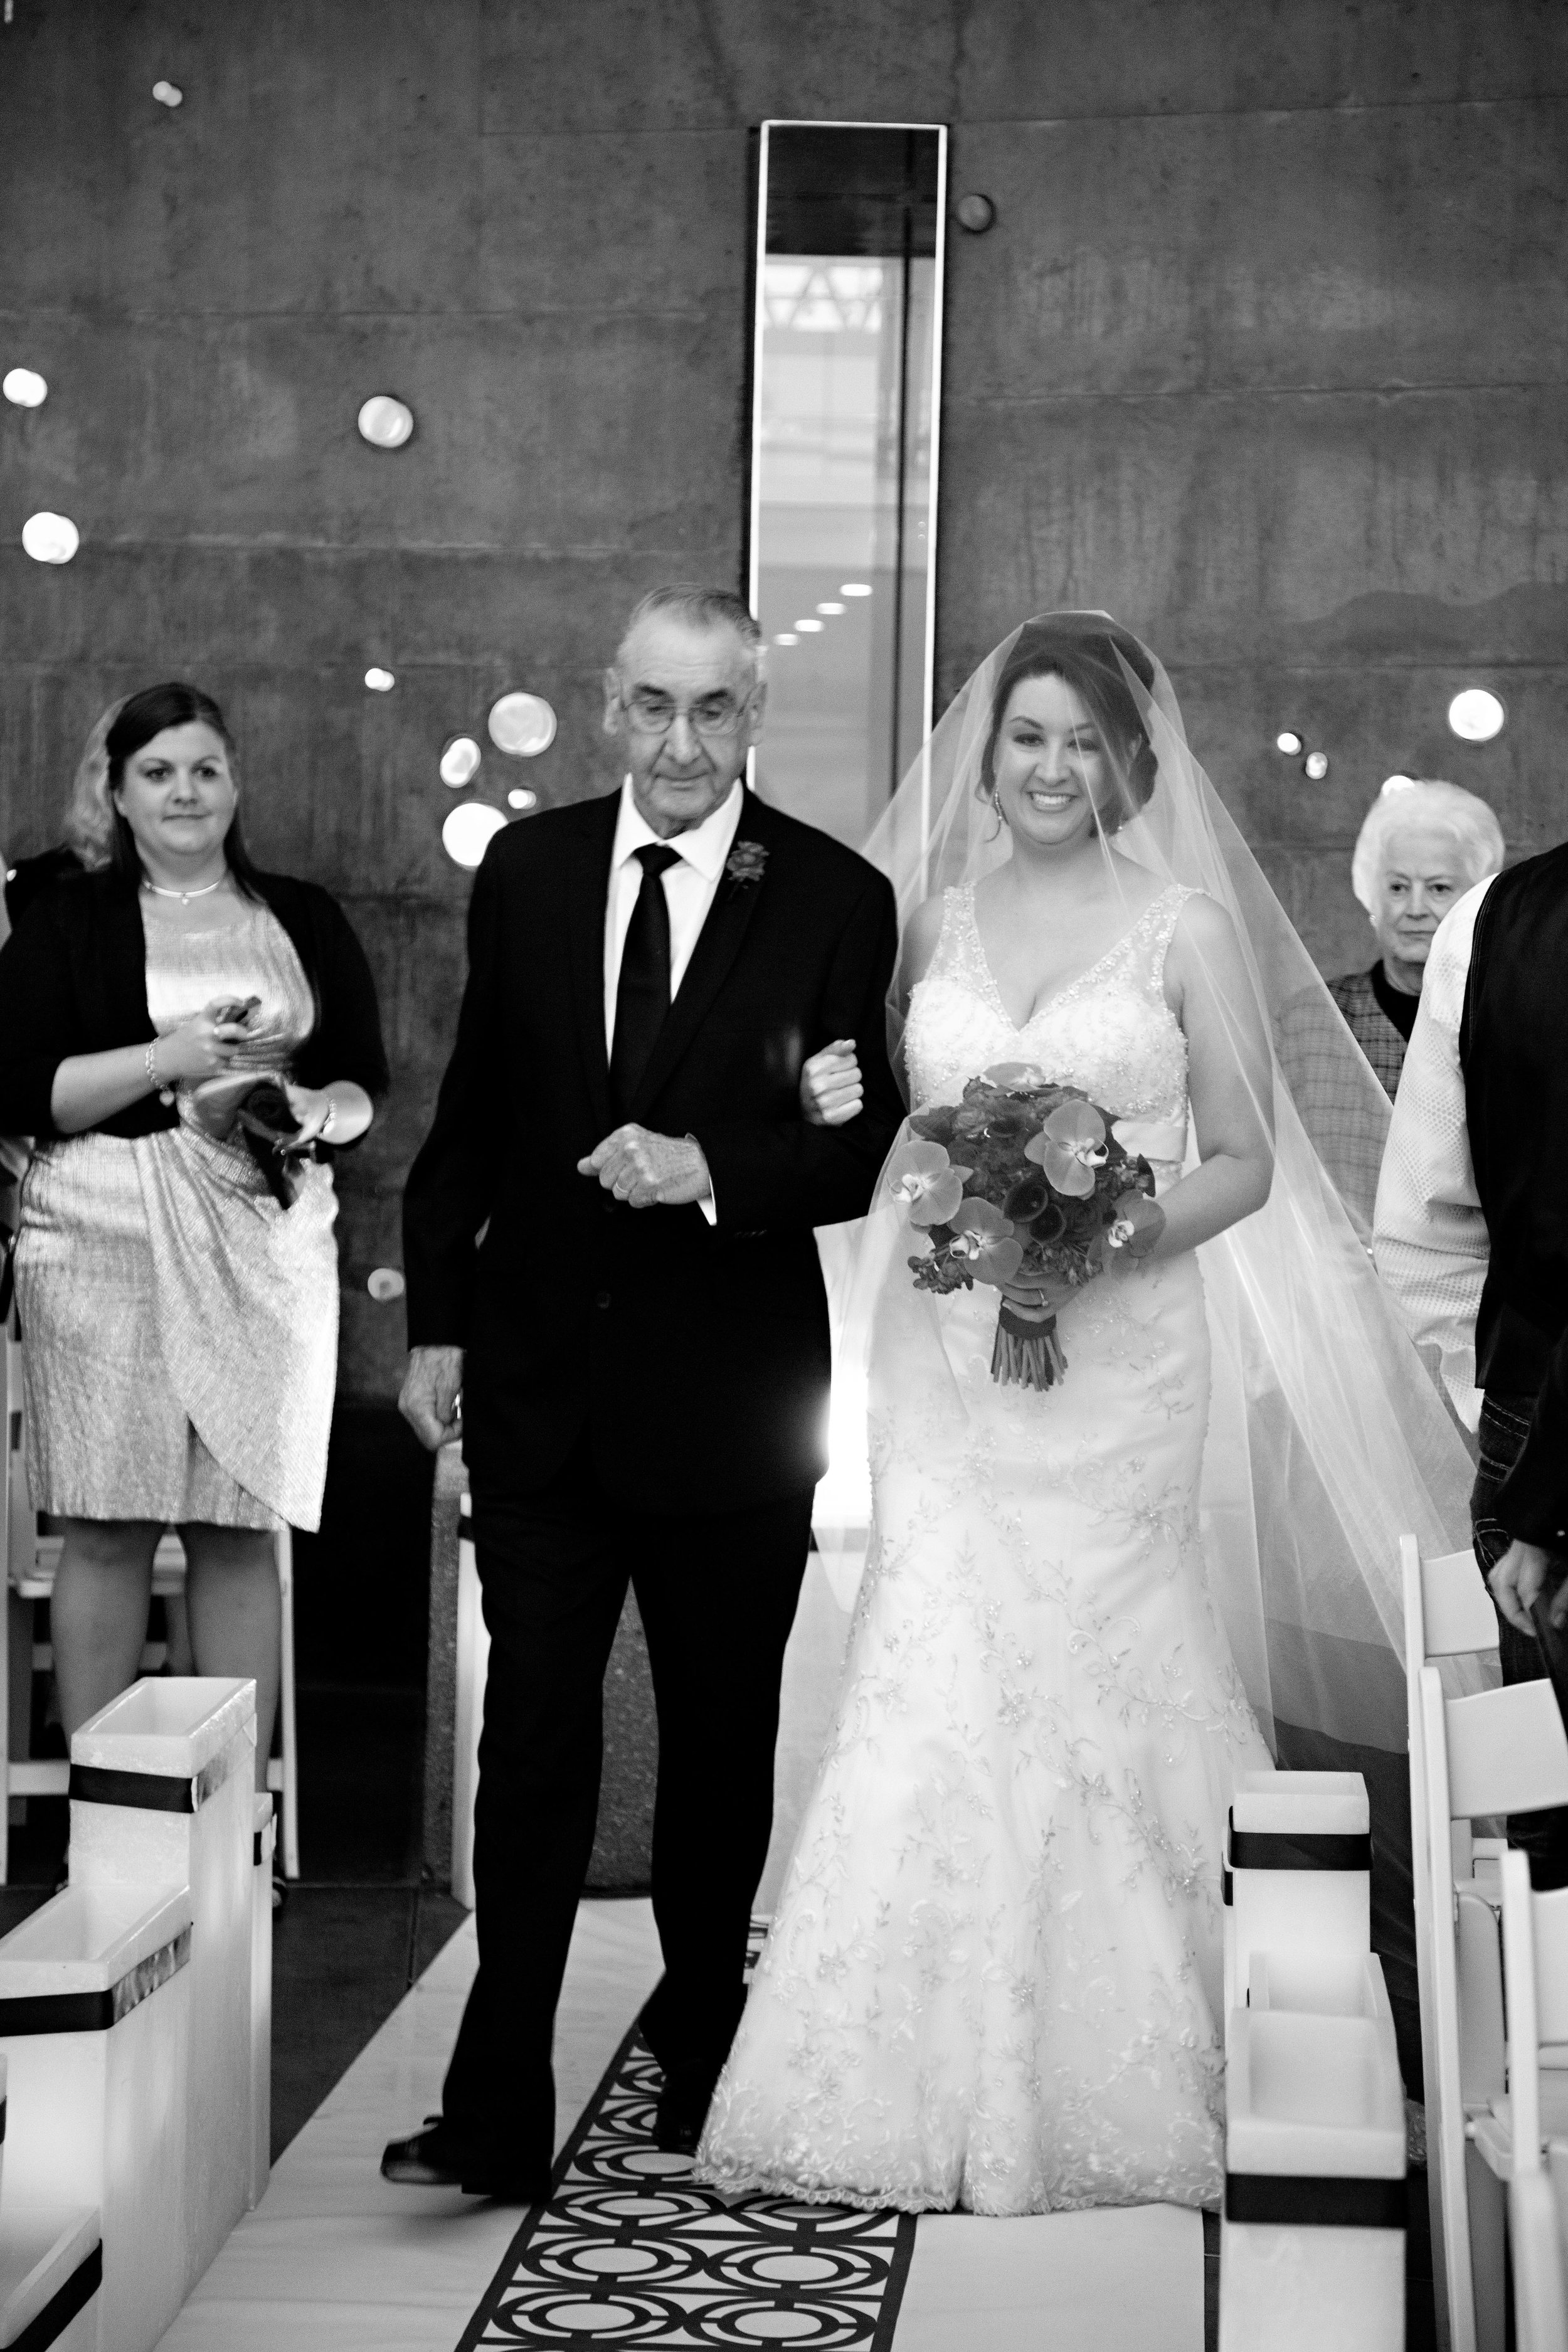 13 bride and father walking down the aisle father giving the bride away O Grace Photography Life Design Events.jpg